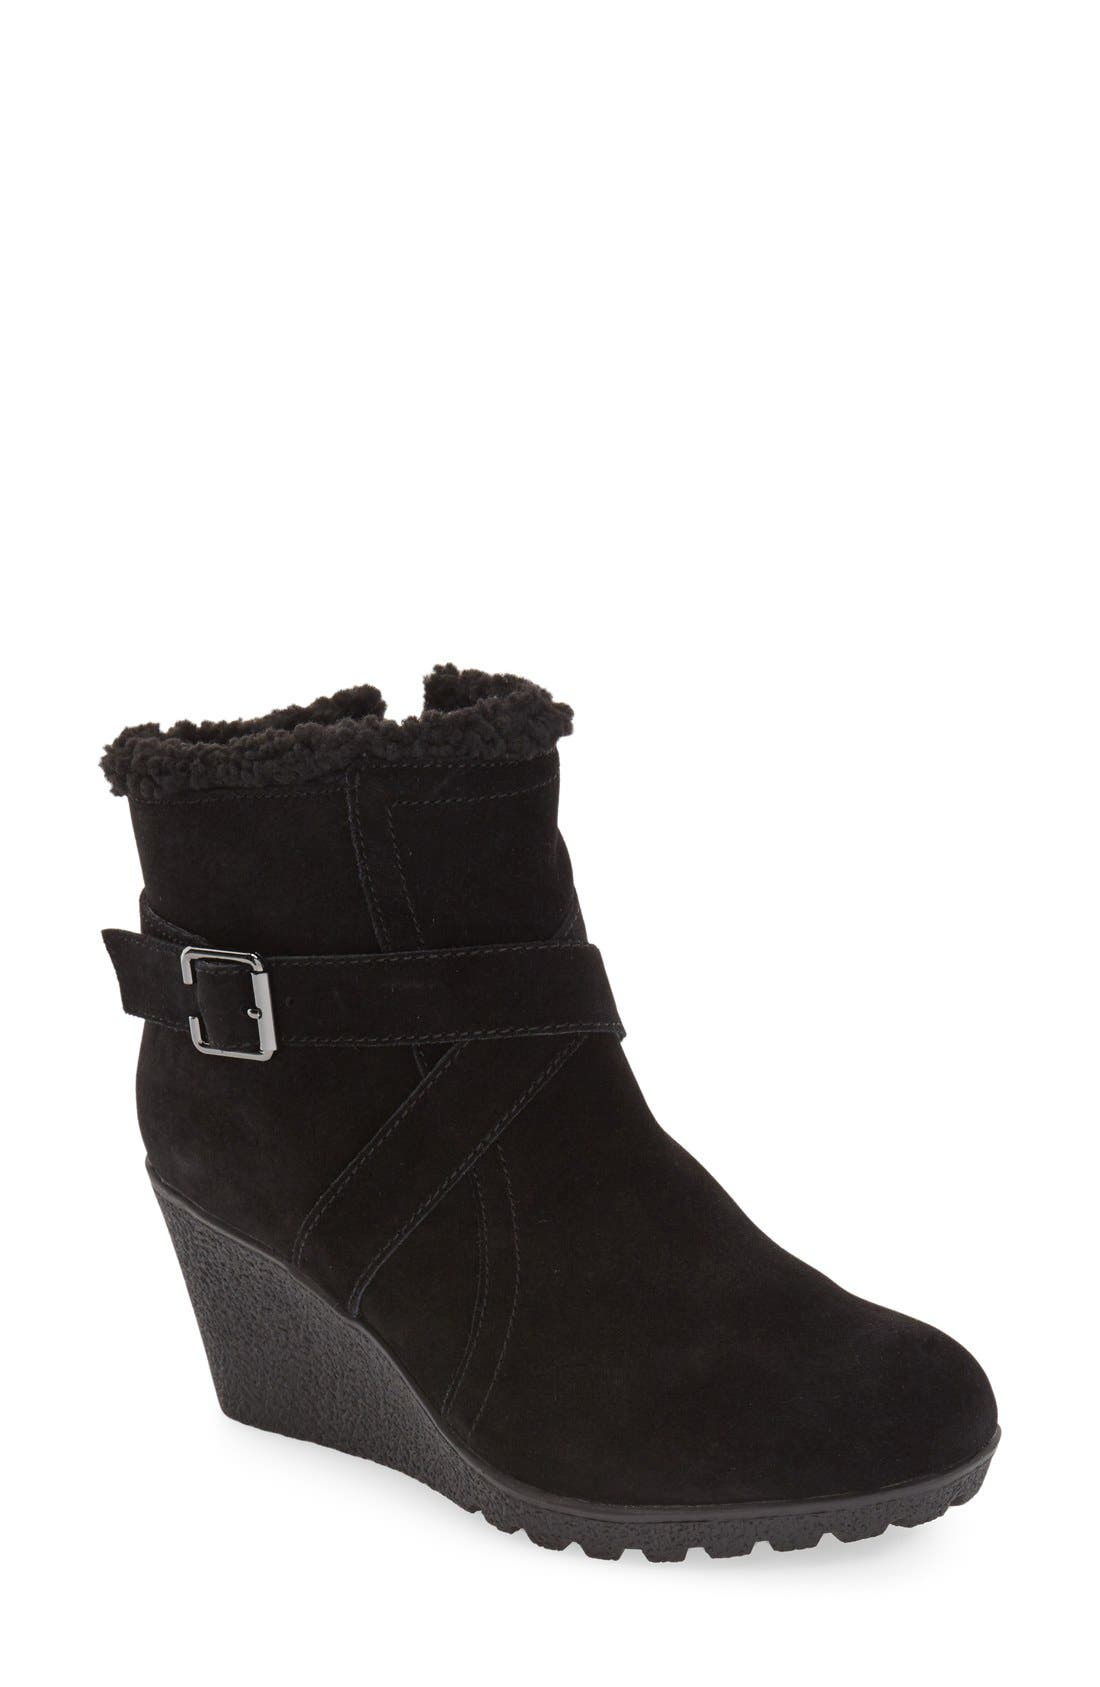 Hush Puppies® 'Amber Miles IIV' Faux Shearling Lined Waterproof Wedge Bootie (Women)